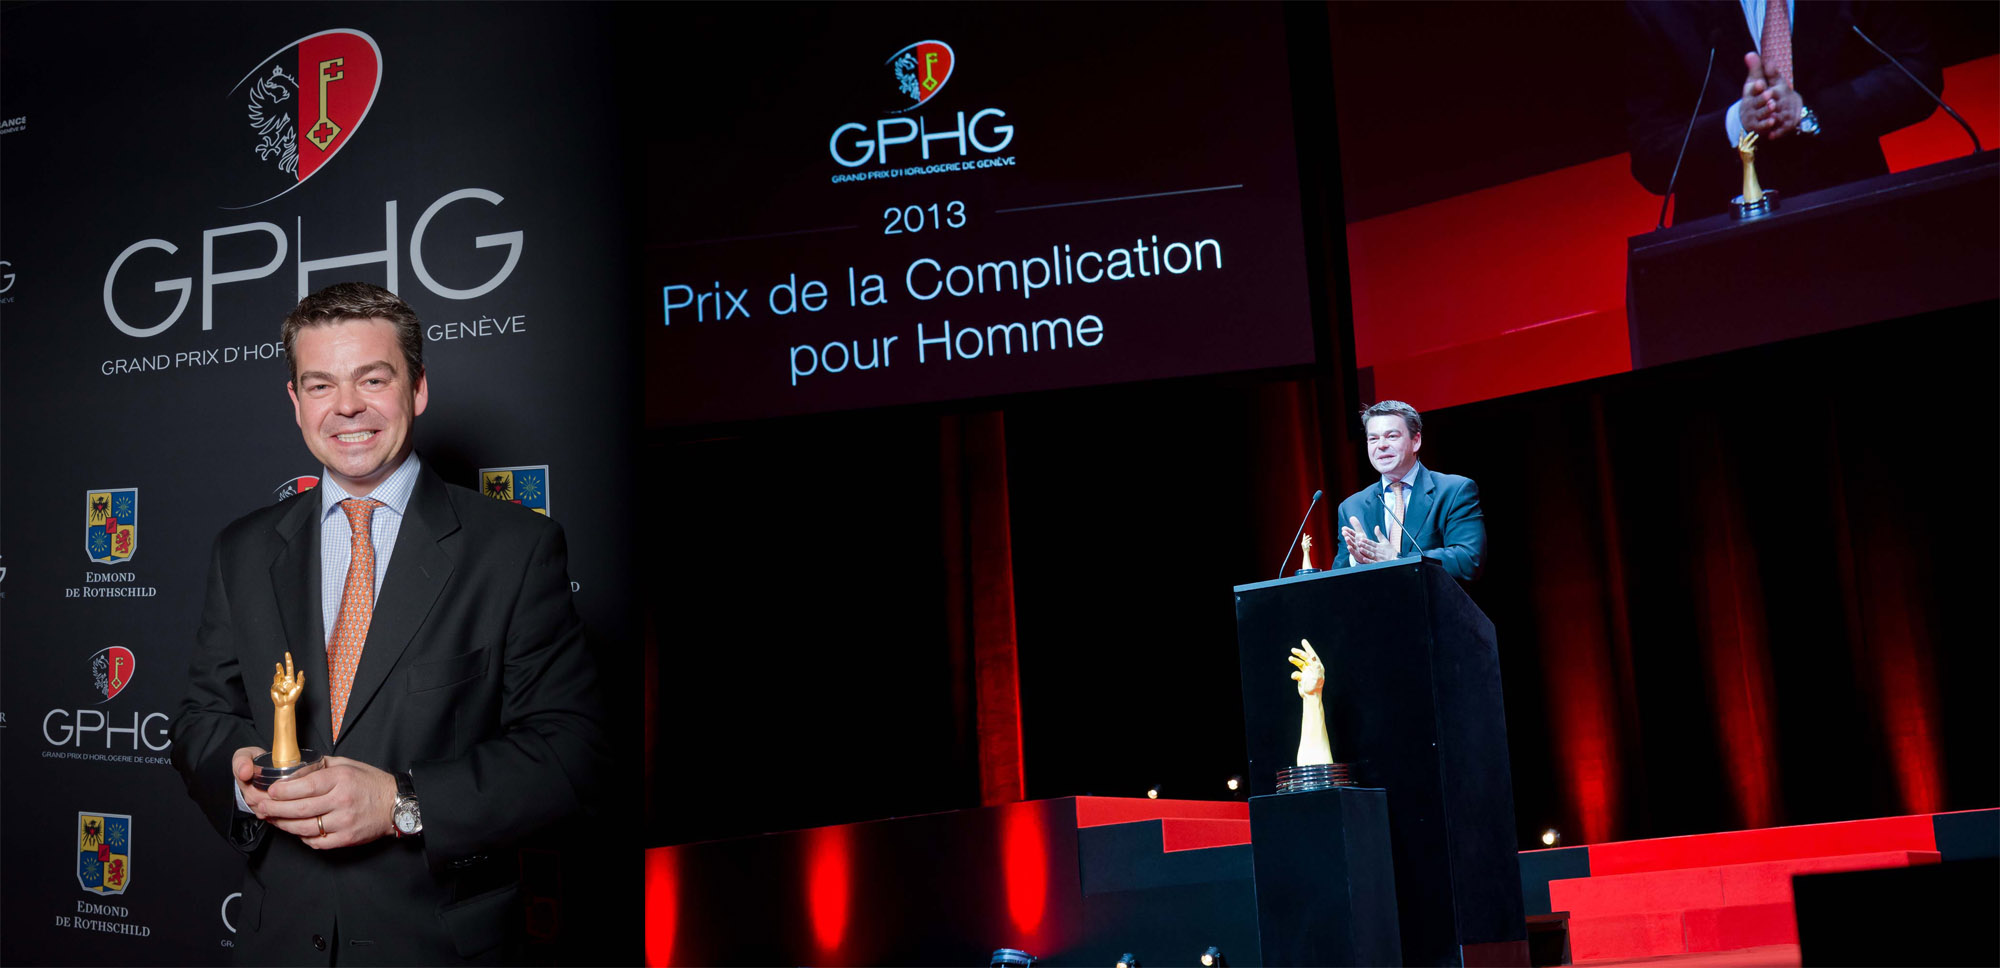 Romain Gauthier receiving his price at GPHG 2013